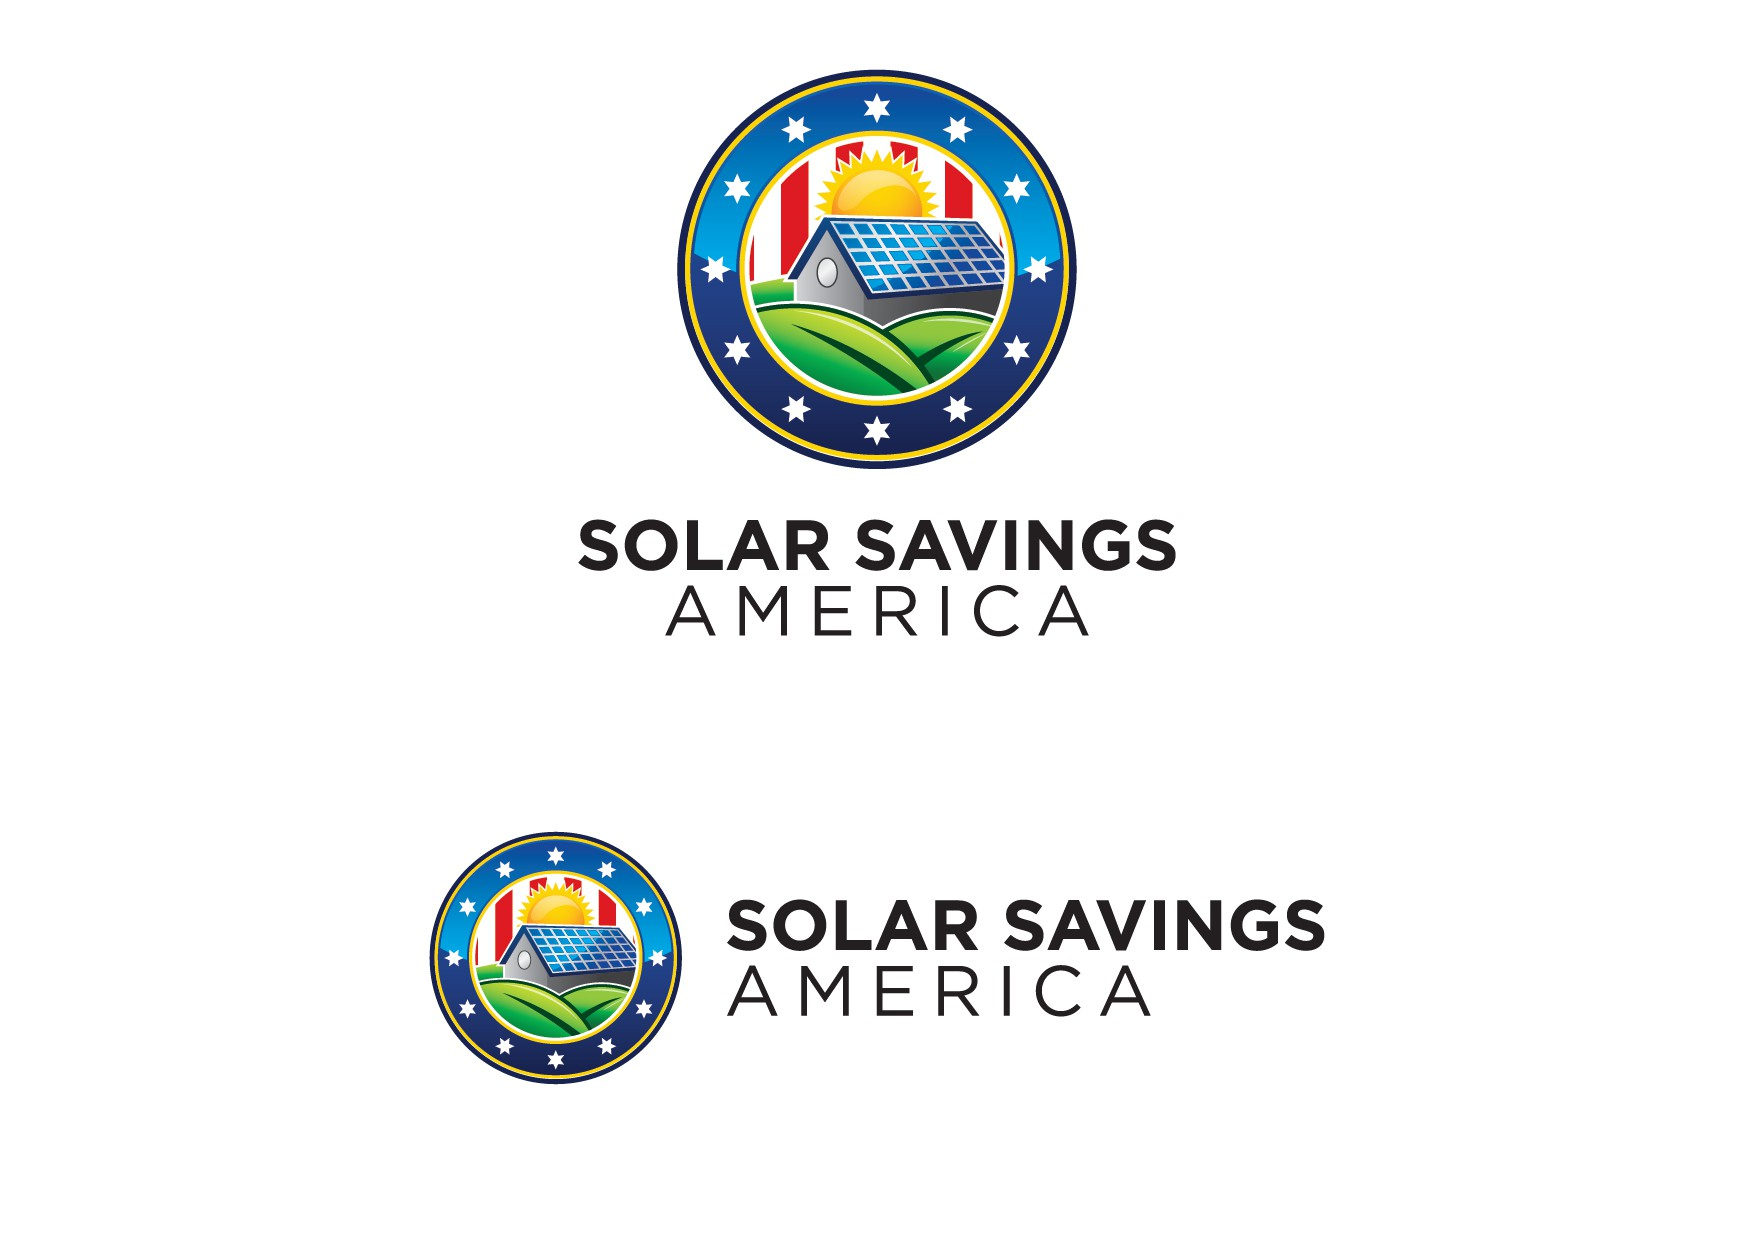 New logo wanted for SolarSavingsAmerica.com